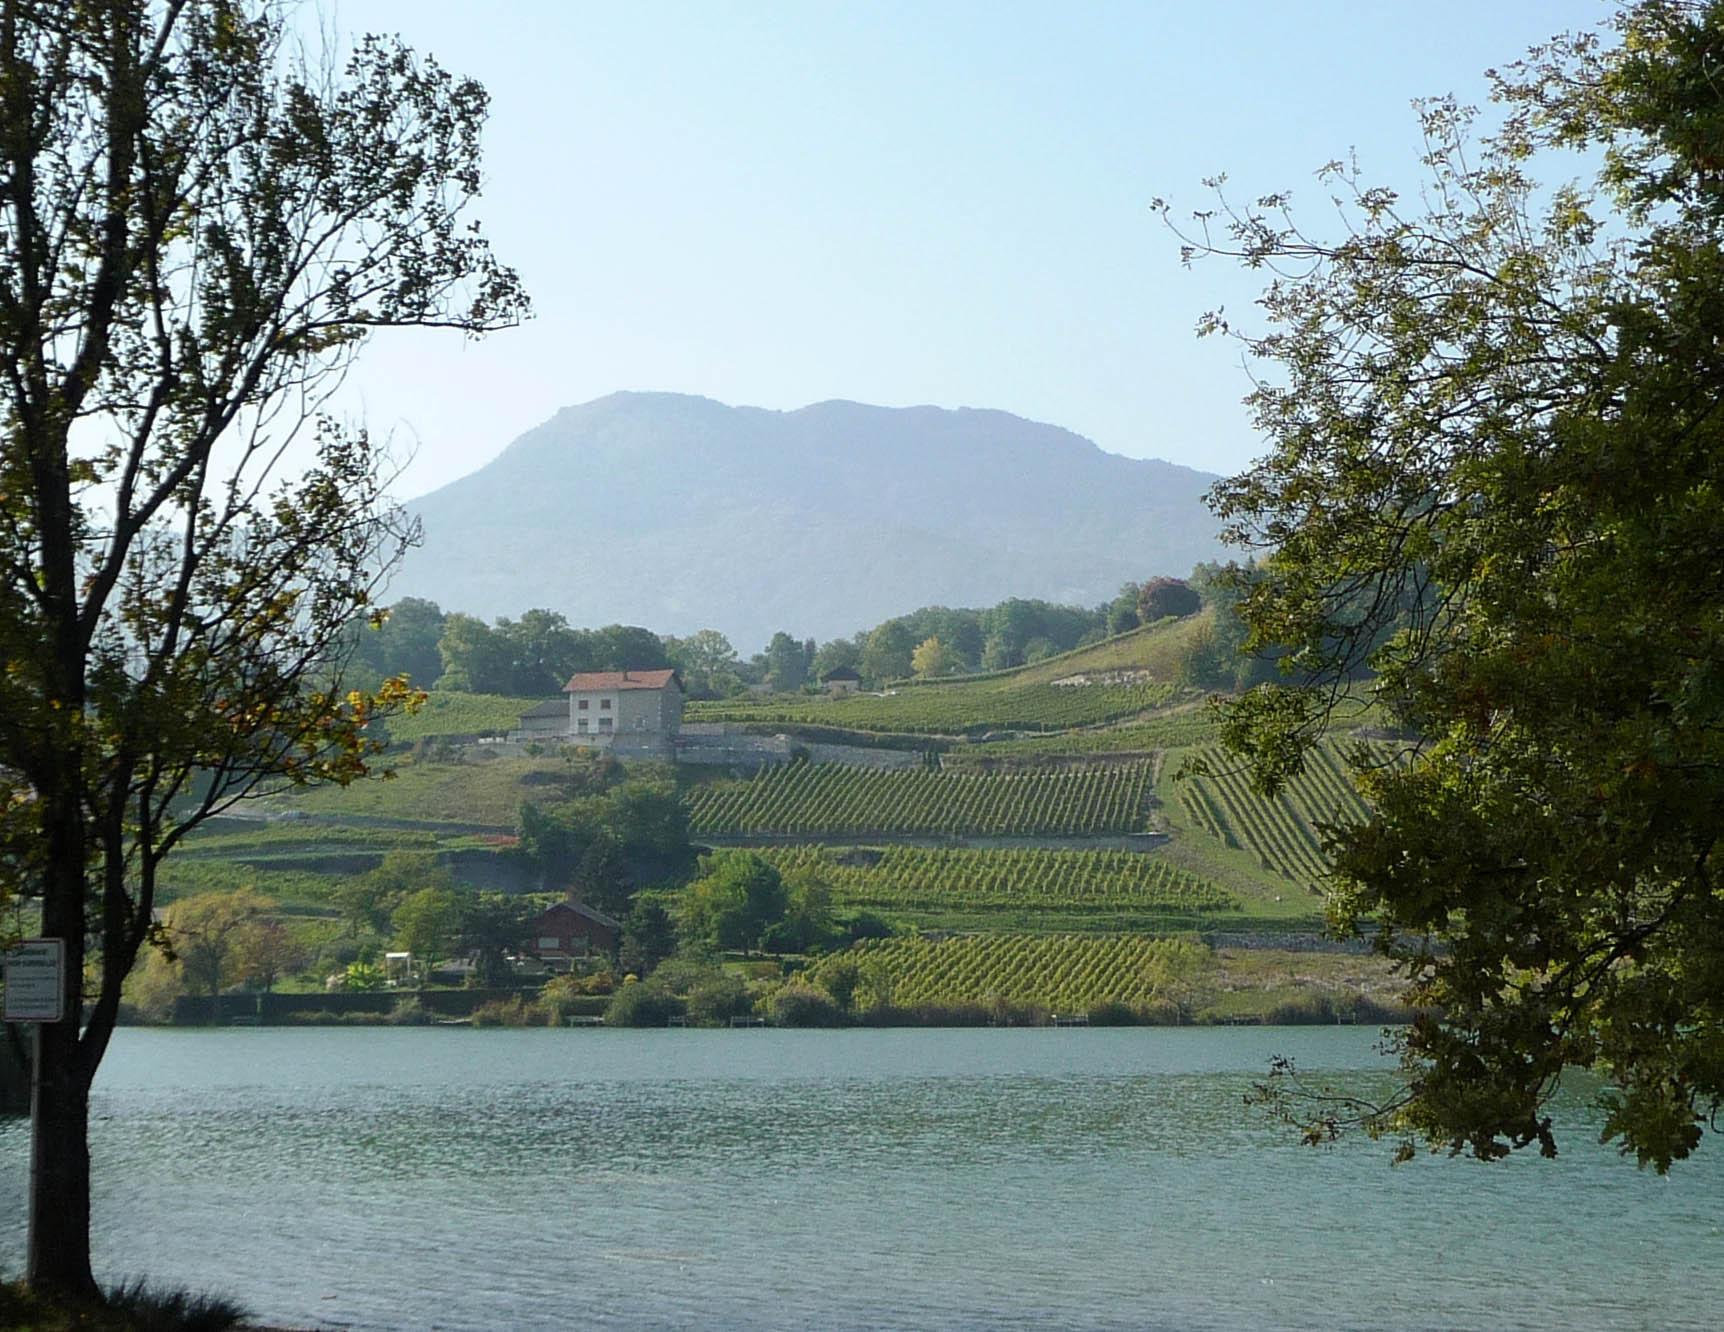 Savoie vineyards by lake